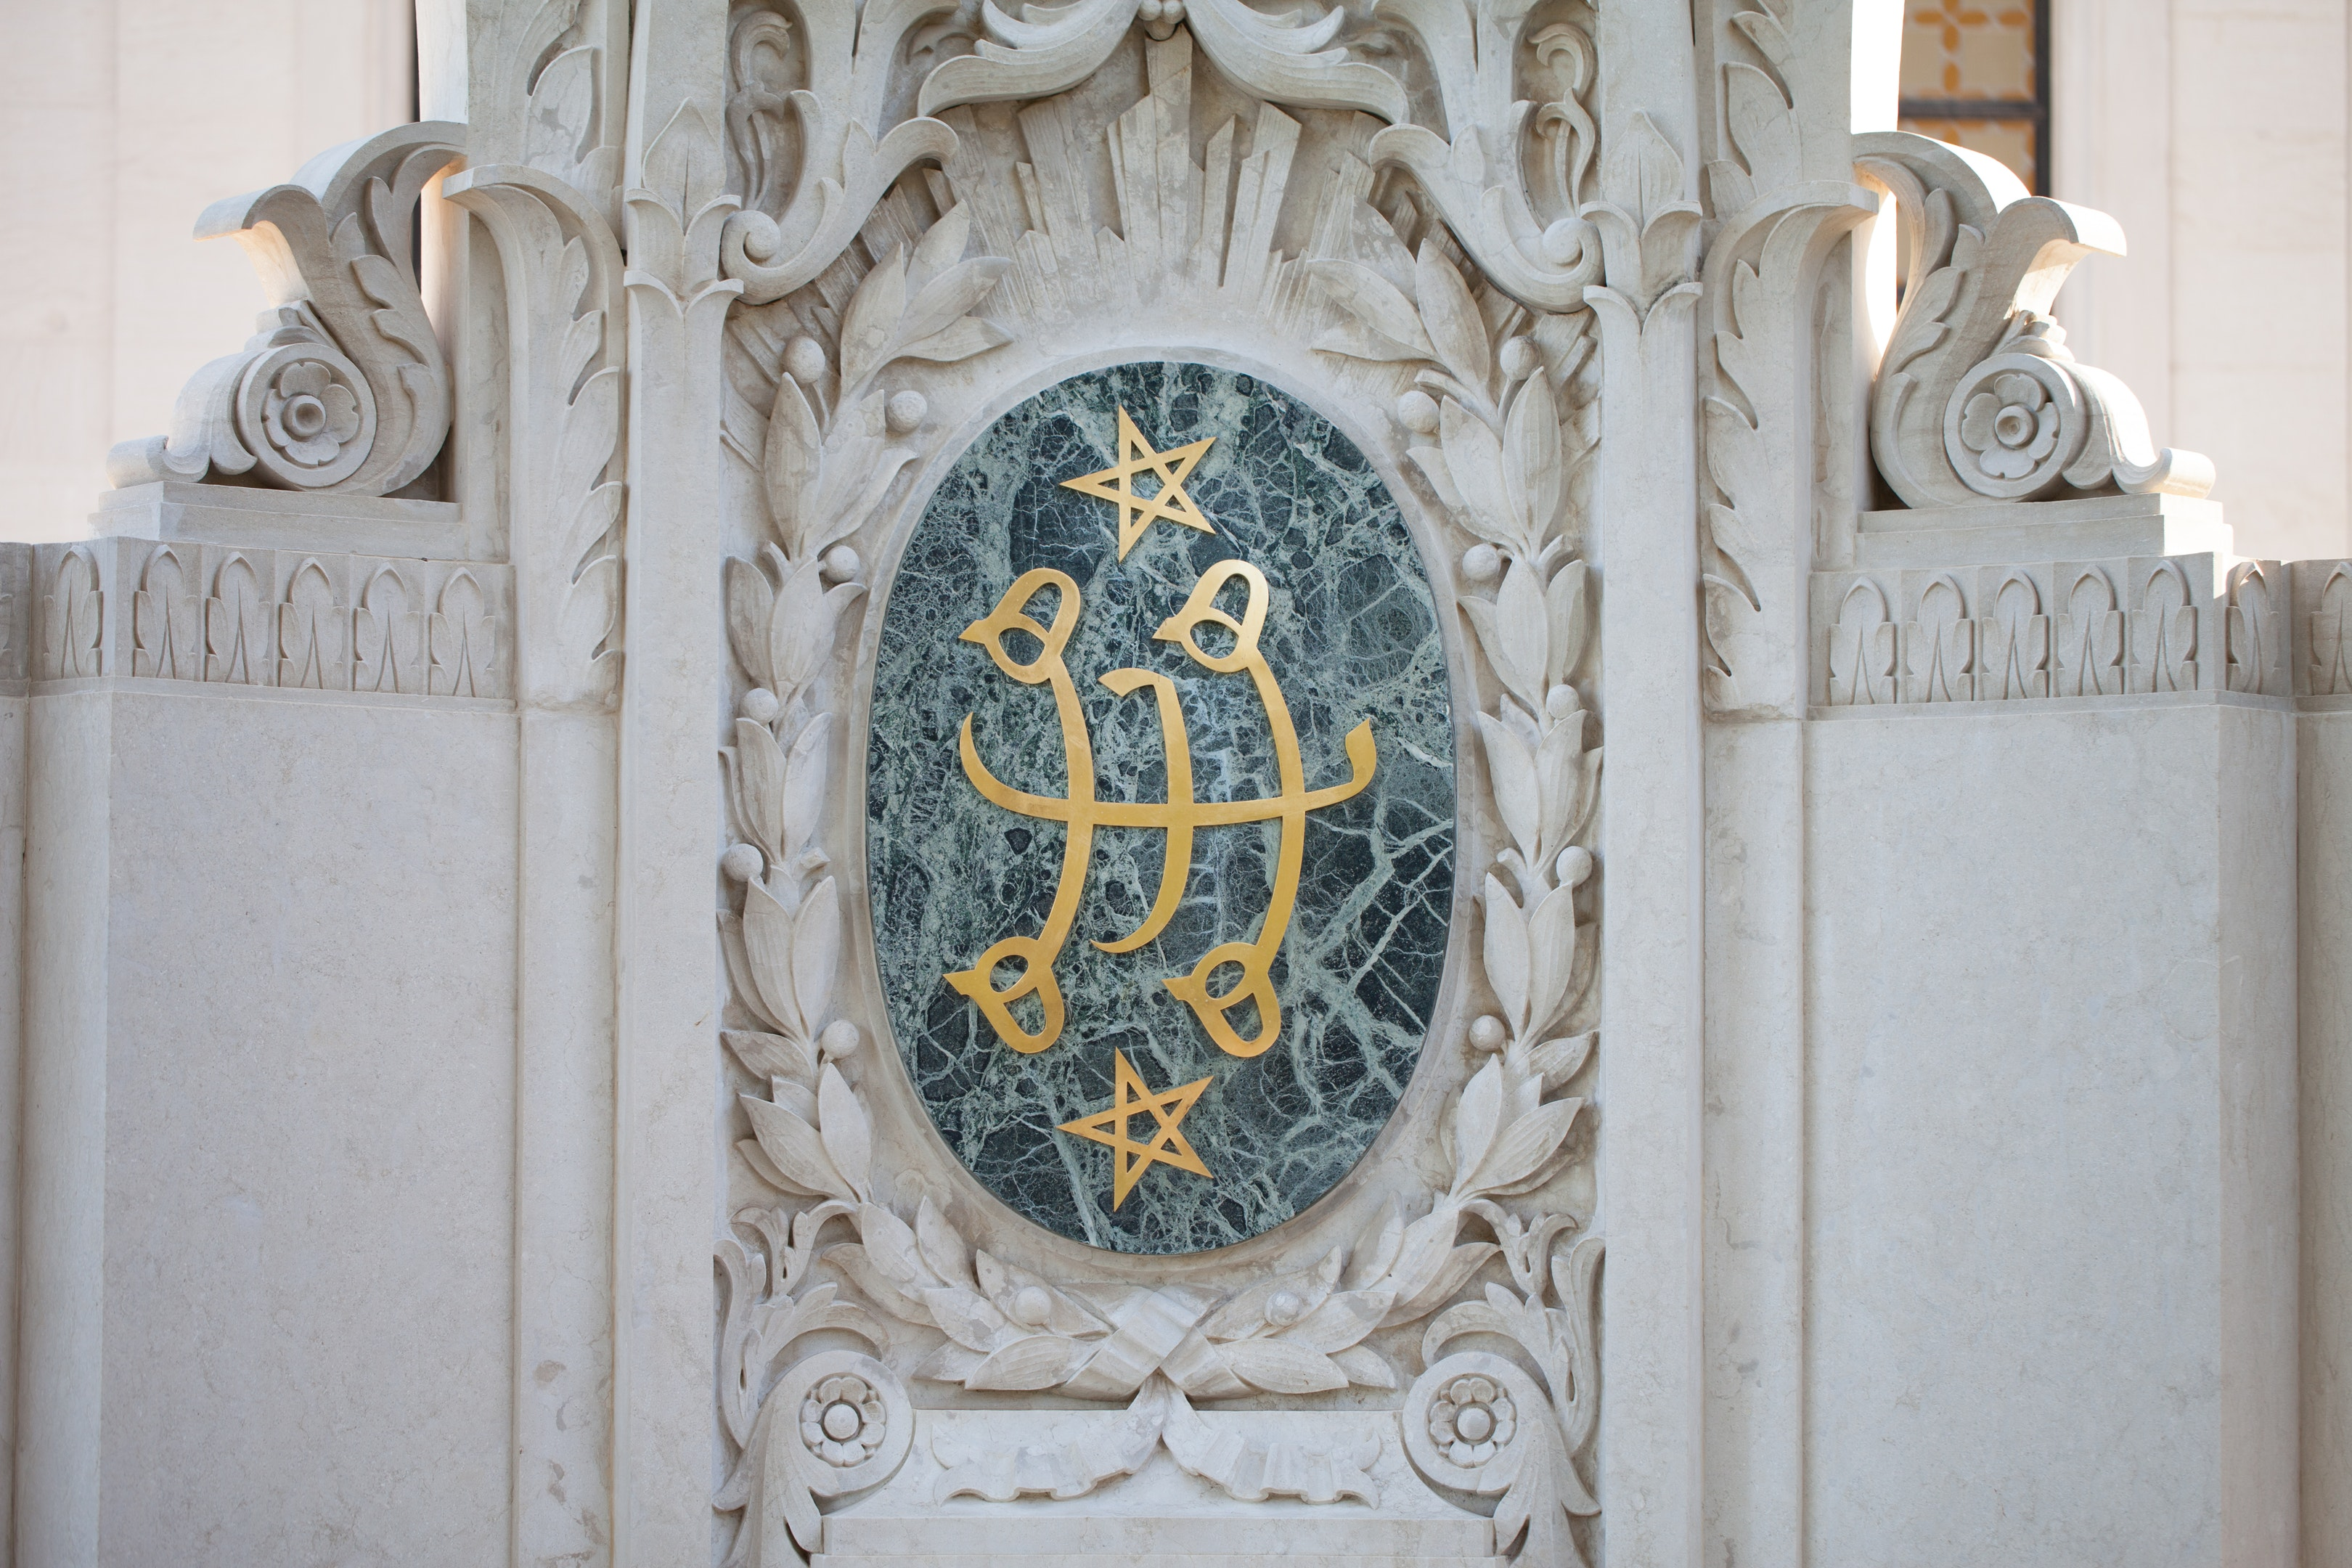 The ringstone symbol on the Shrine of the Báb in Haifa, Israel. The two stars stand for the Twin Holy Manifestations of the Bahá'í Faith - the Báb and Bahá'u'lláh. On Oct. 29 and 30, Bahá'ís will celebrate their birthdays. This year marks the 200th anniversary of the birth of the Báb.